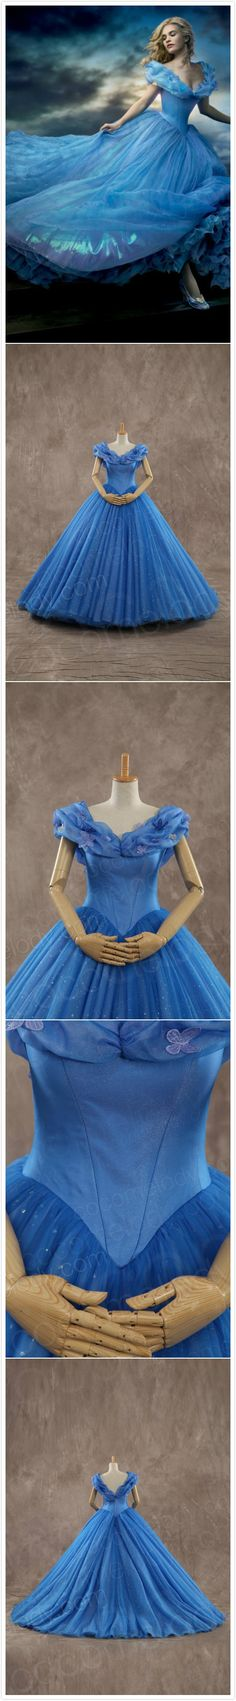 I know it early but I'm going to Disney world so I'm being Cinderella for Halloween